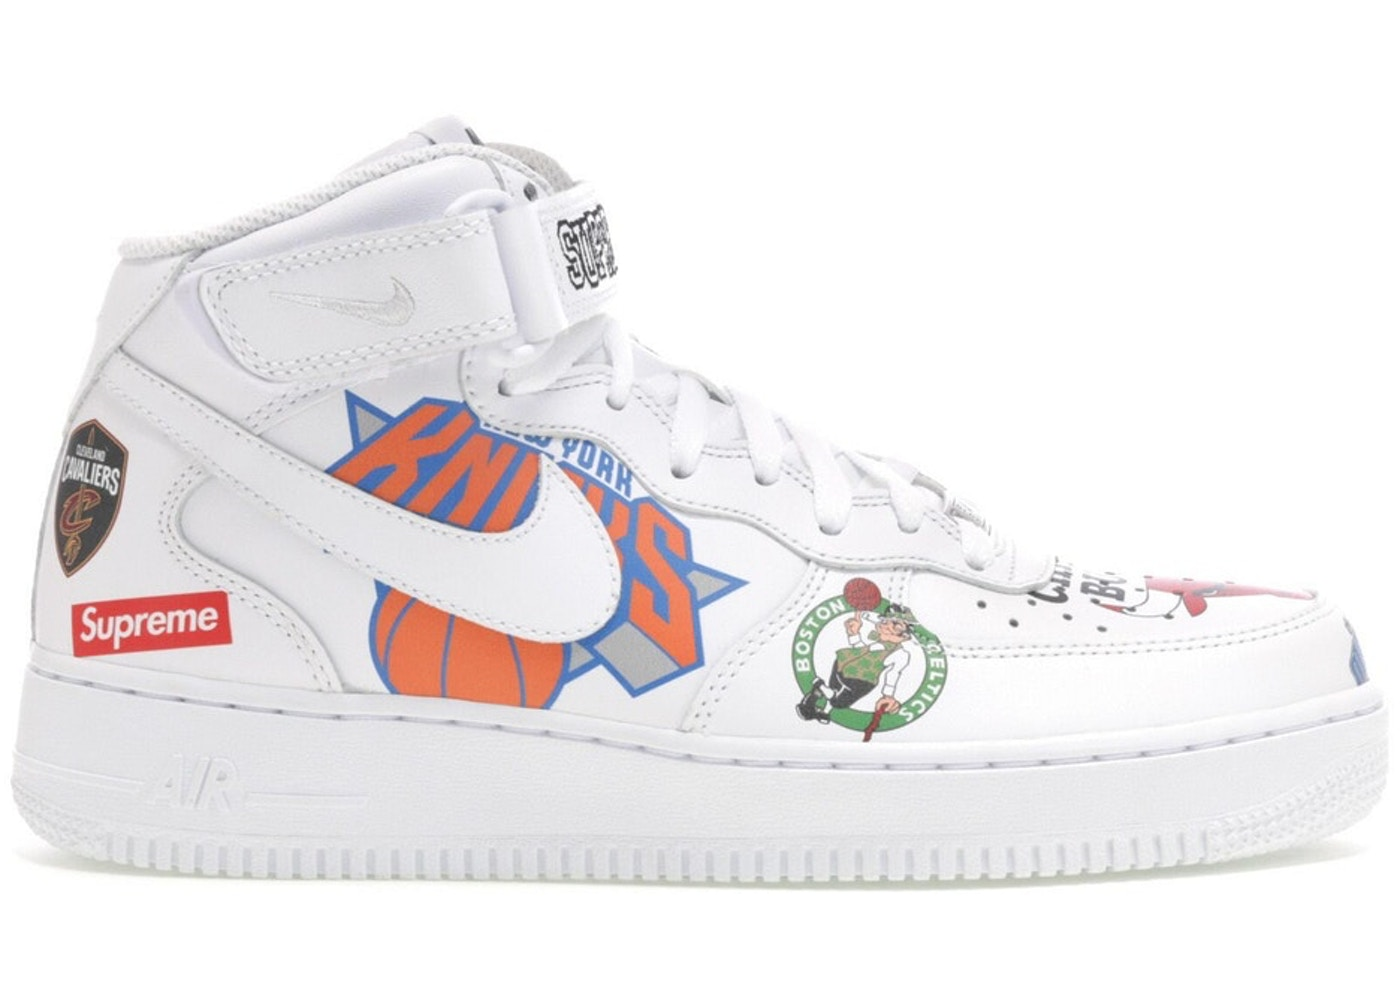 online retailer a2b10 bc277 Air Force 1 Mid Supreme NBA White